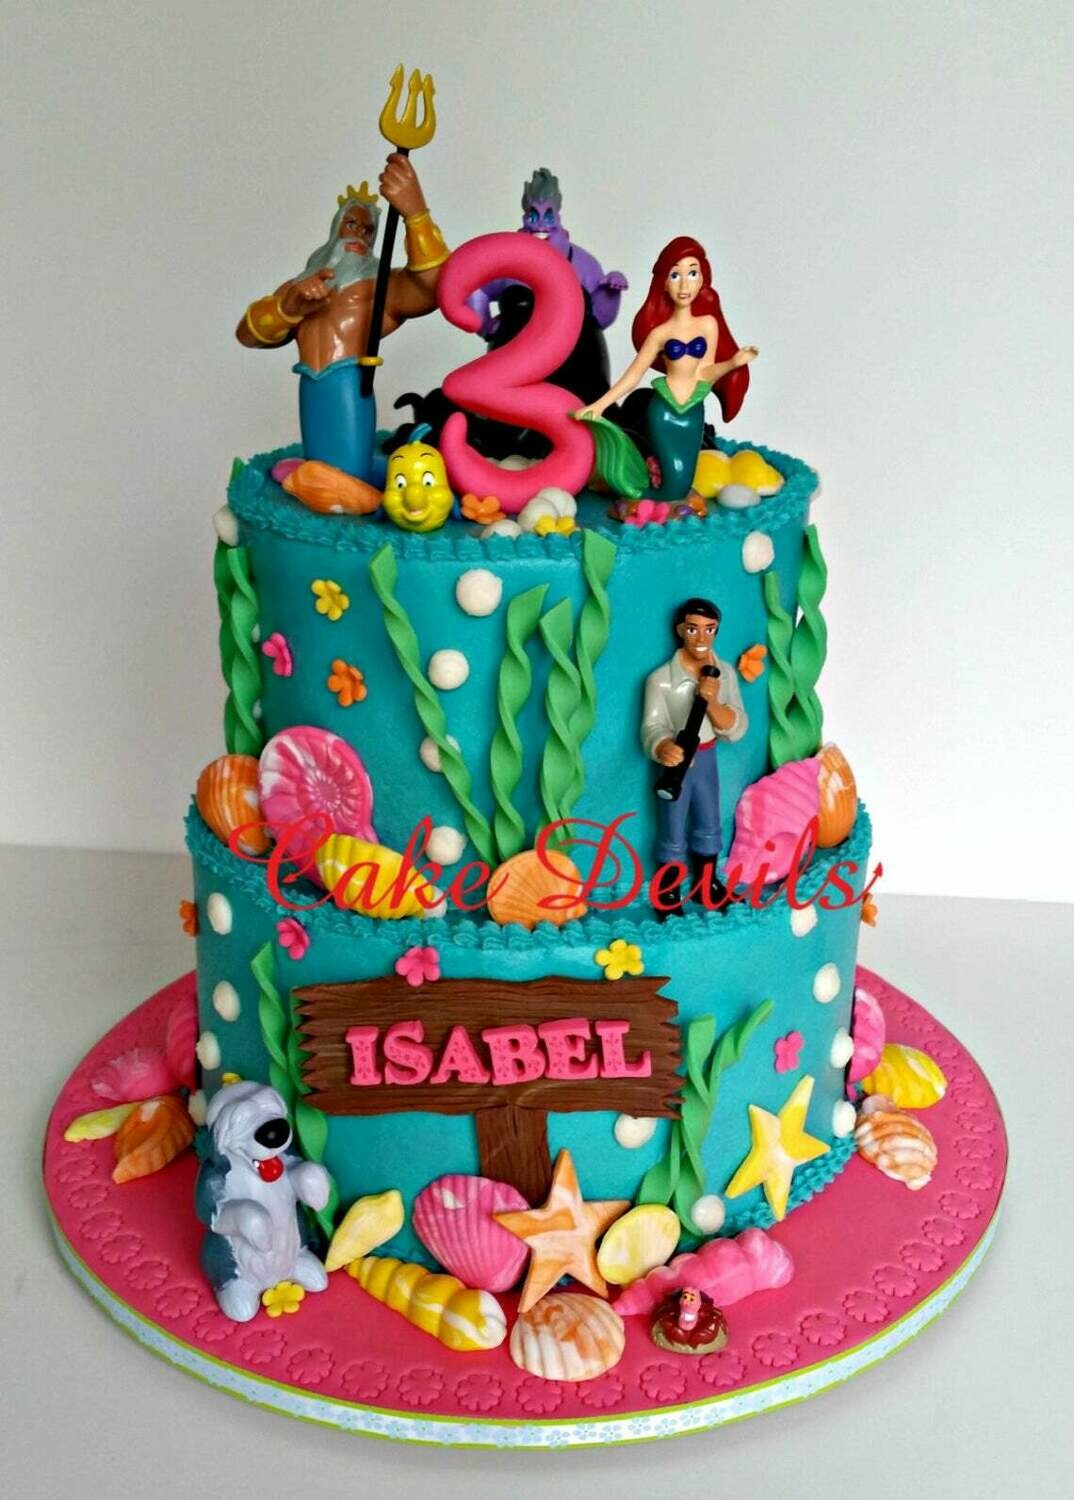 Under the Sea Ocean Life Fondant Cake Toppers, Mermaid Fondant Cake Decorations